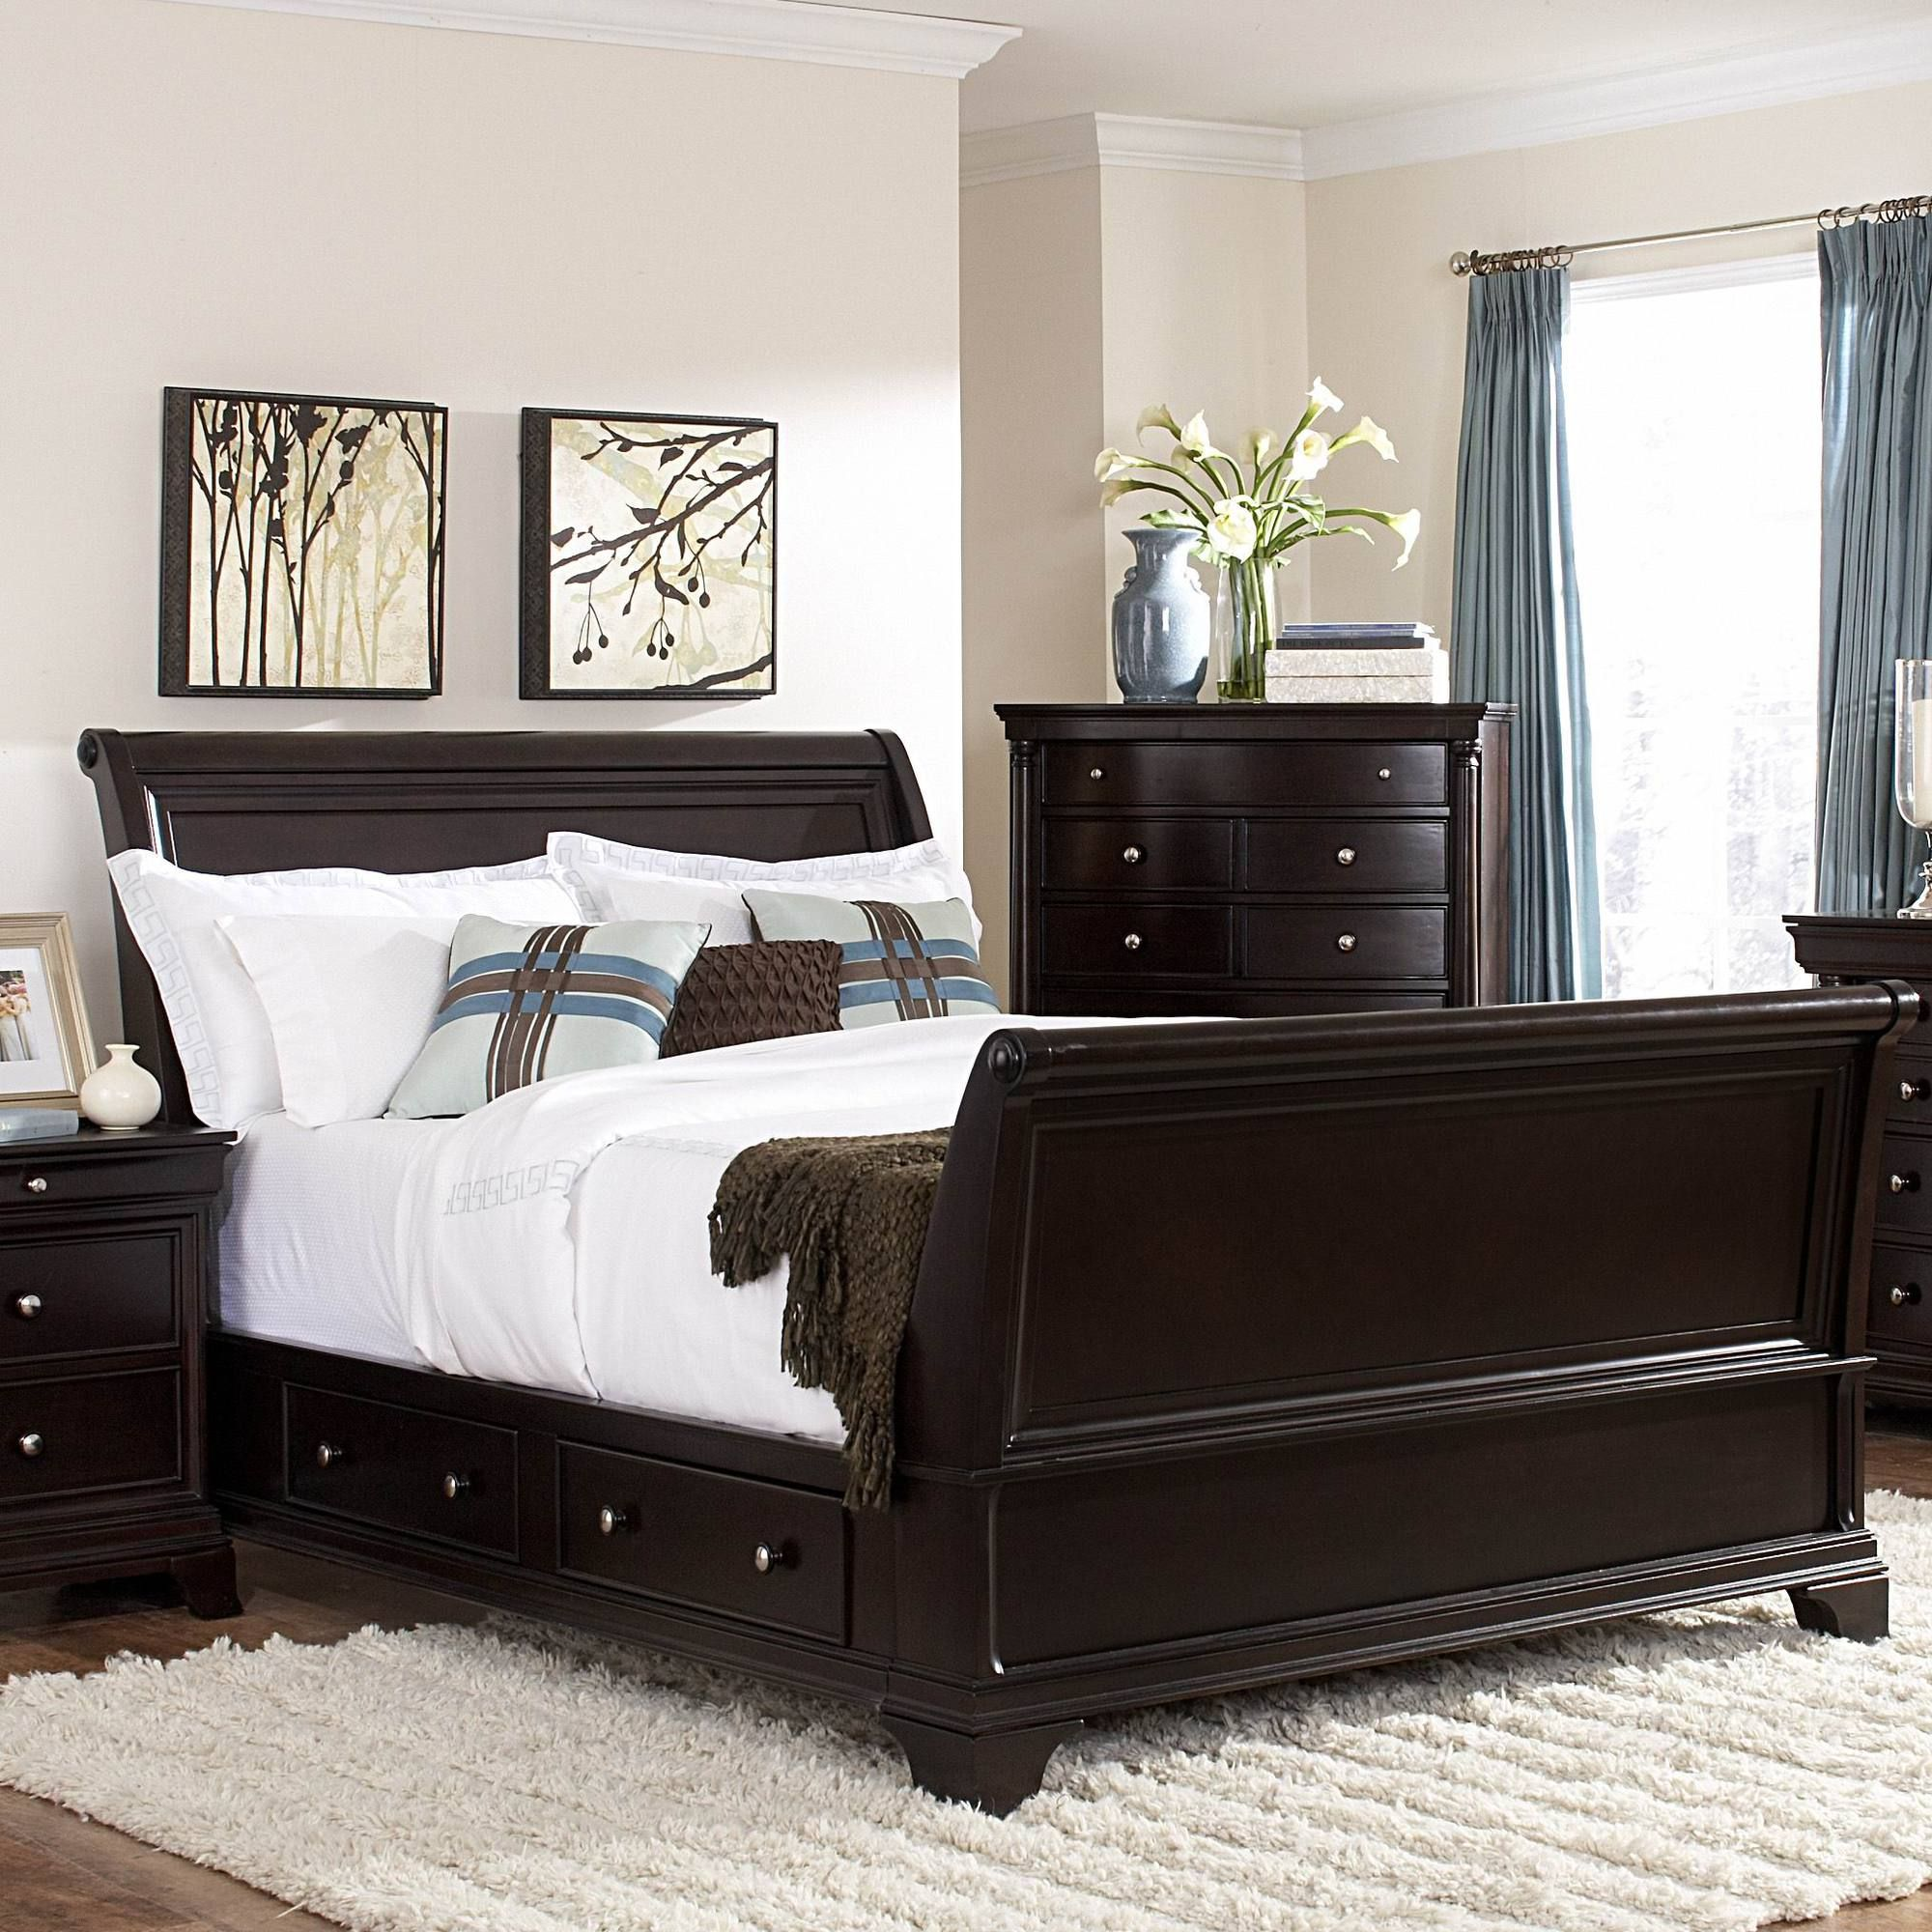 Woodbridge Home Designs Inglewood Sleigh Bed Bed Furniture